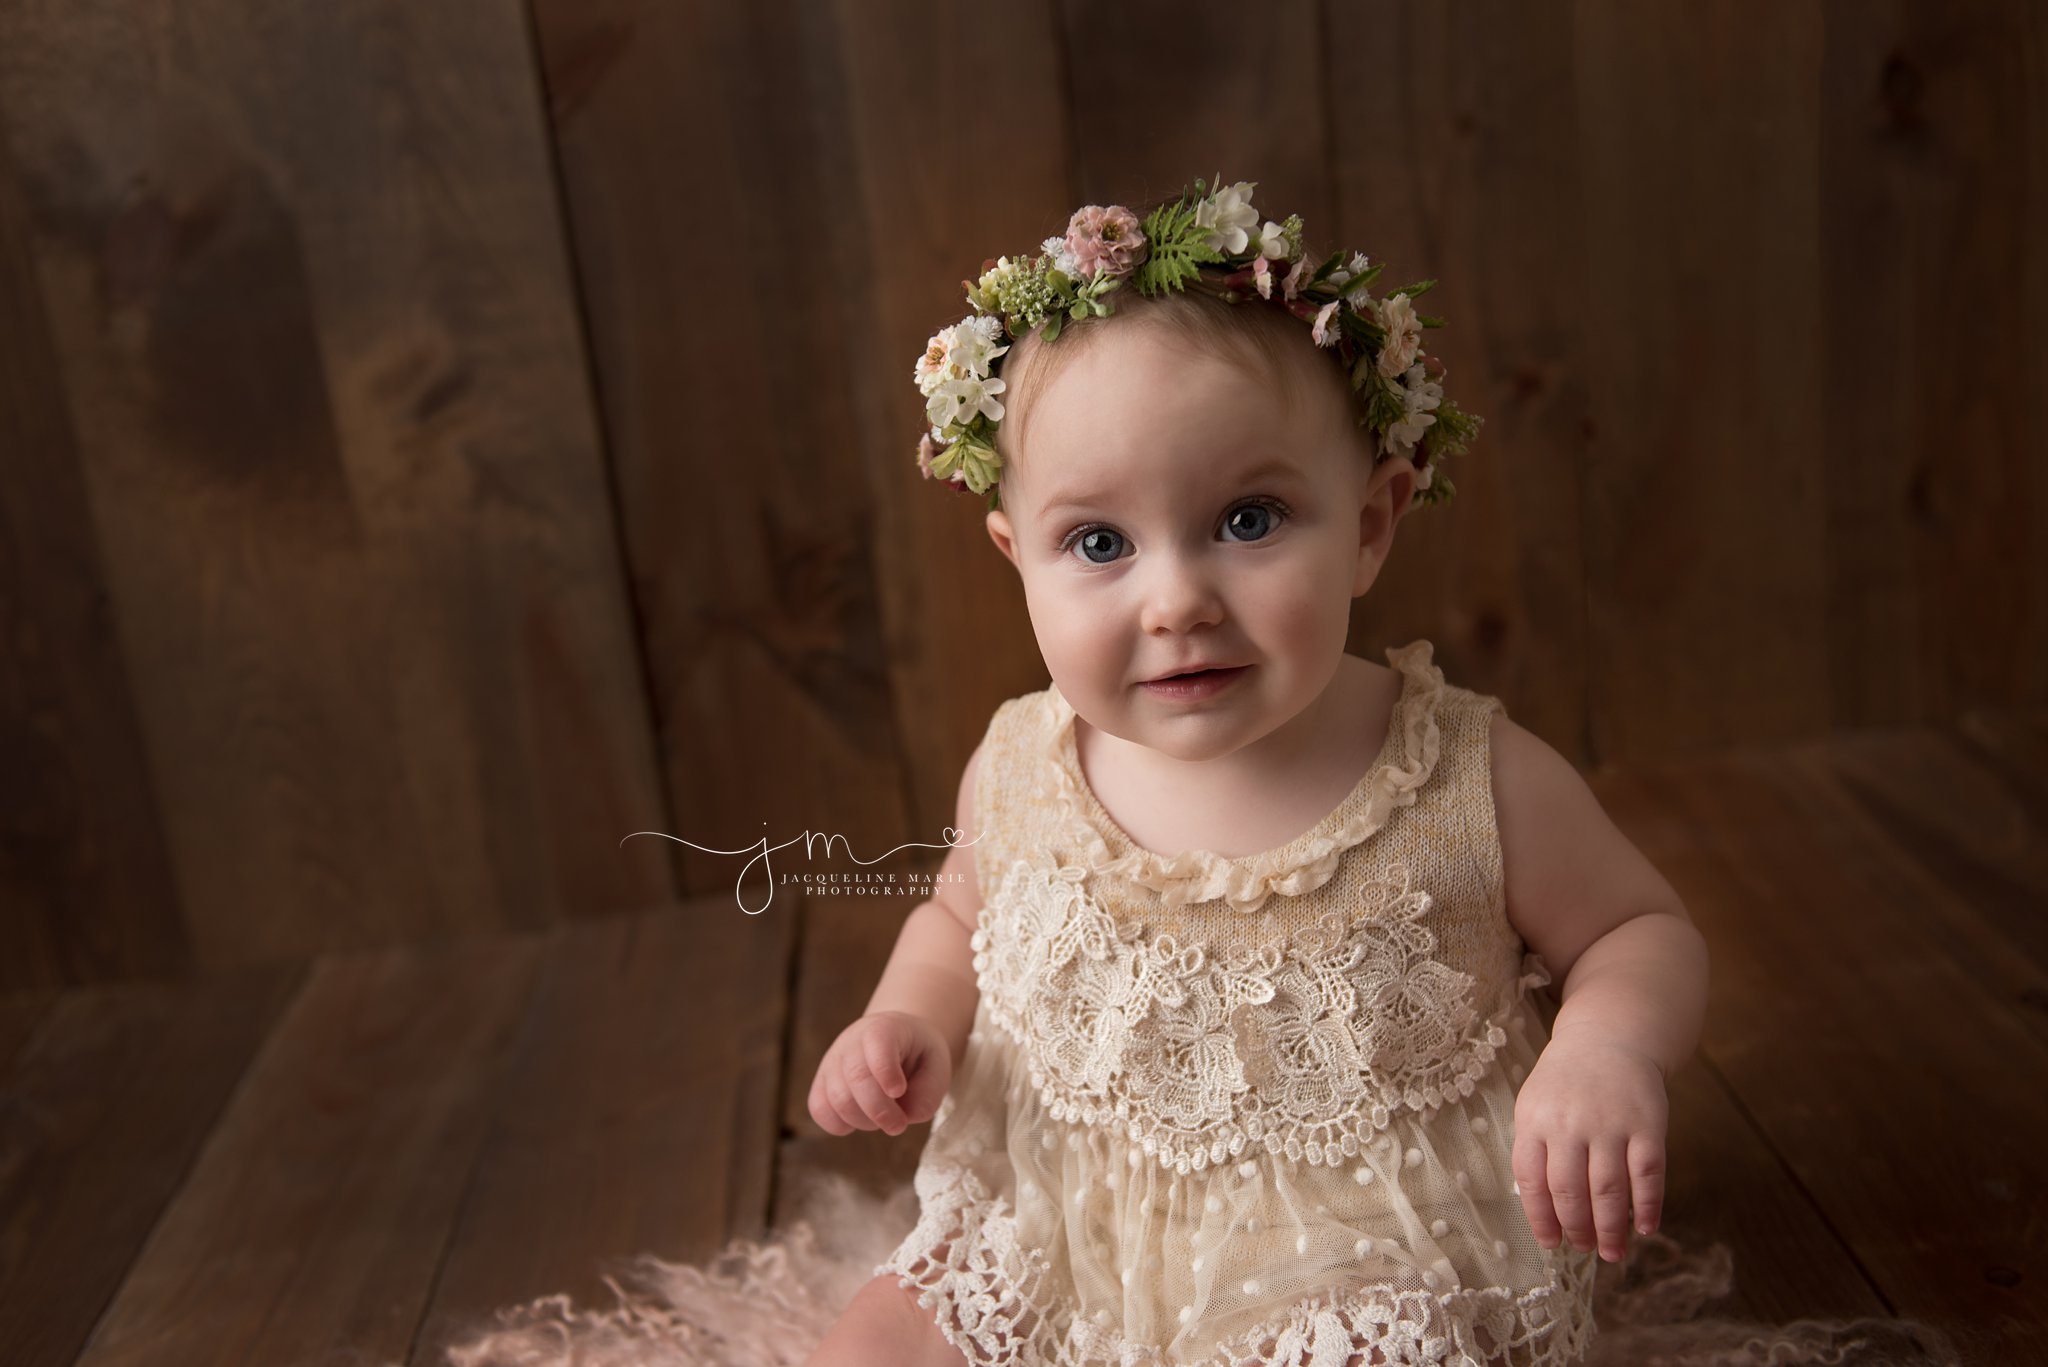 1 year old nora wears a floral crown for first birthday pictures in columbus ohio